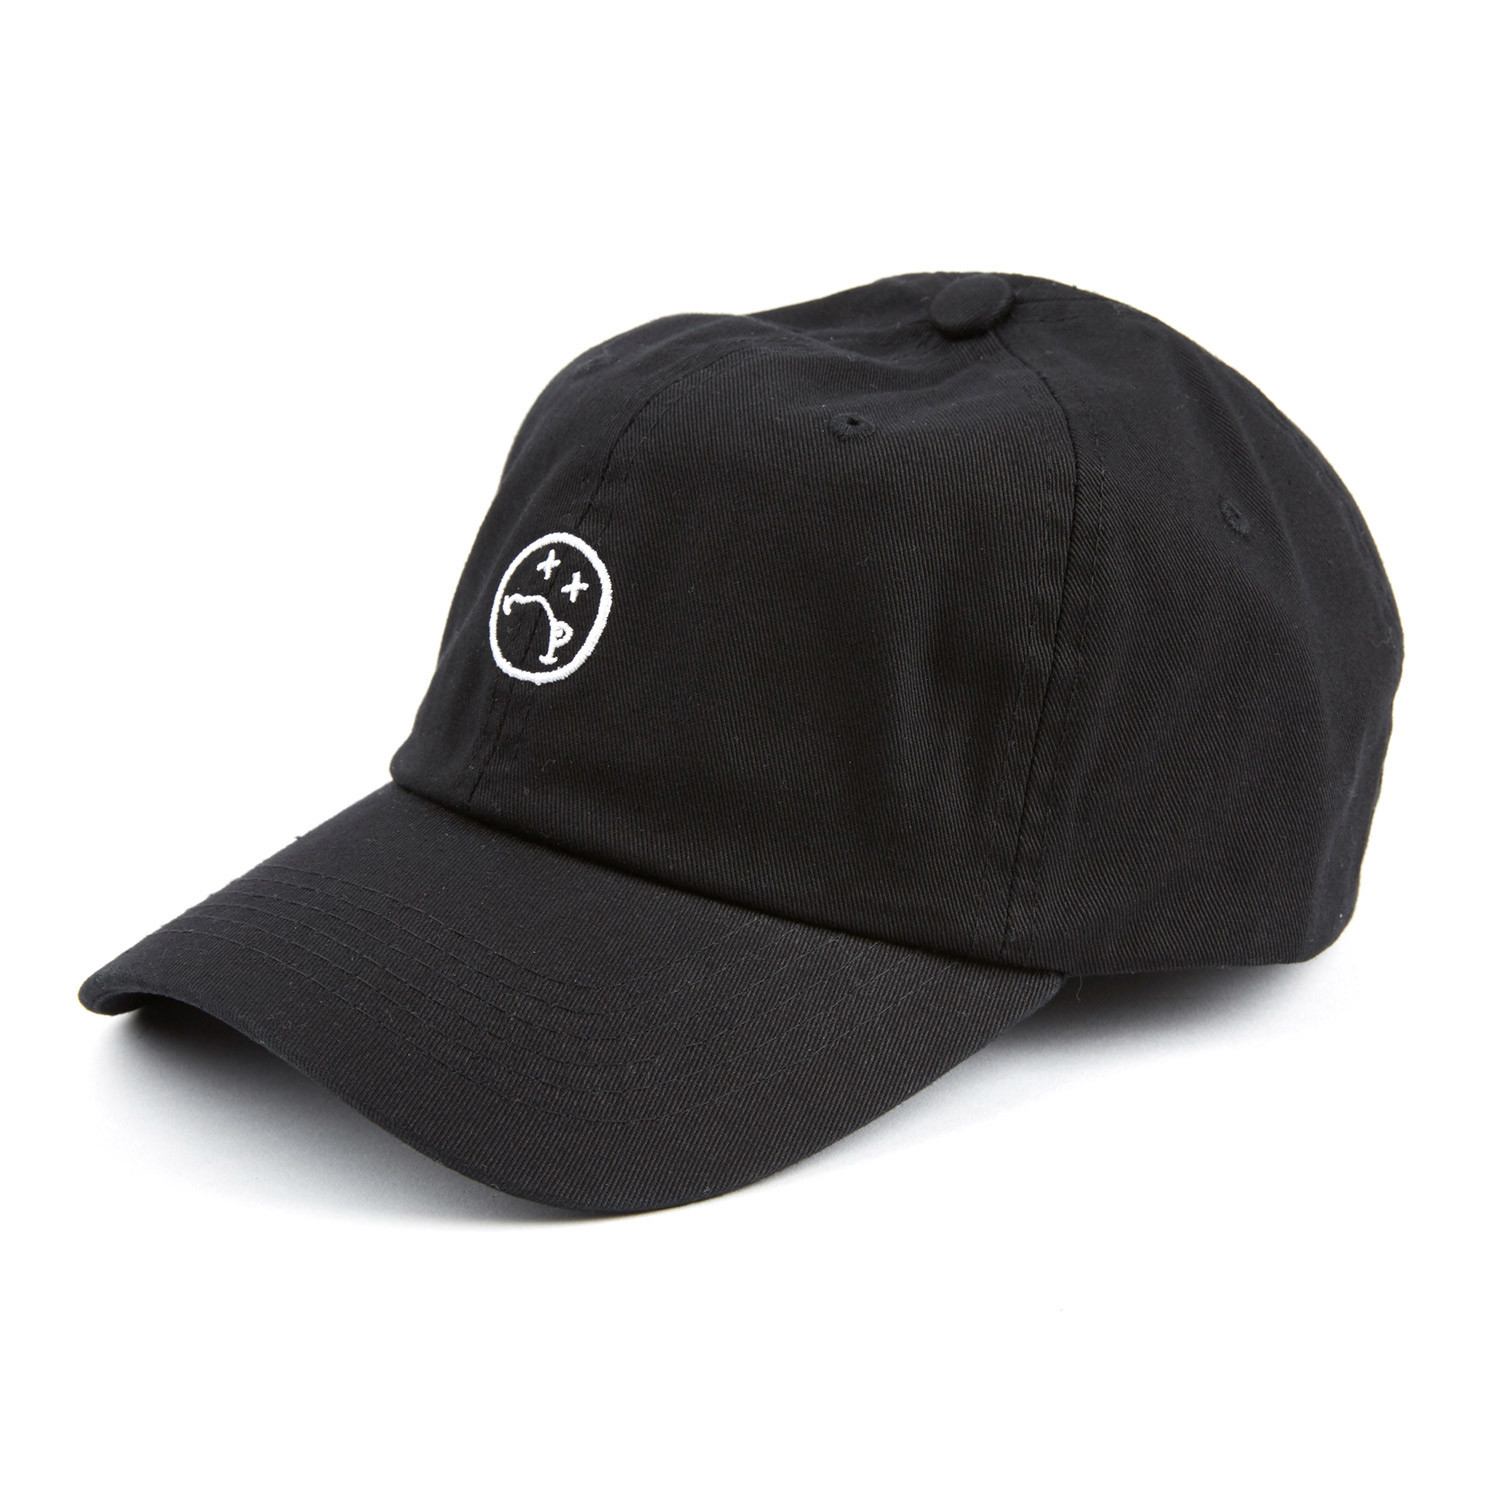 f7437ab578f1fd838e10e9208e7c9d92_large?1468614823 ill face dad cap black any memes touch of modern